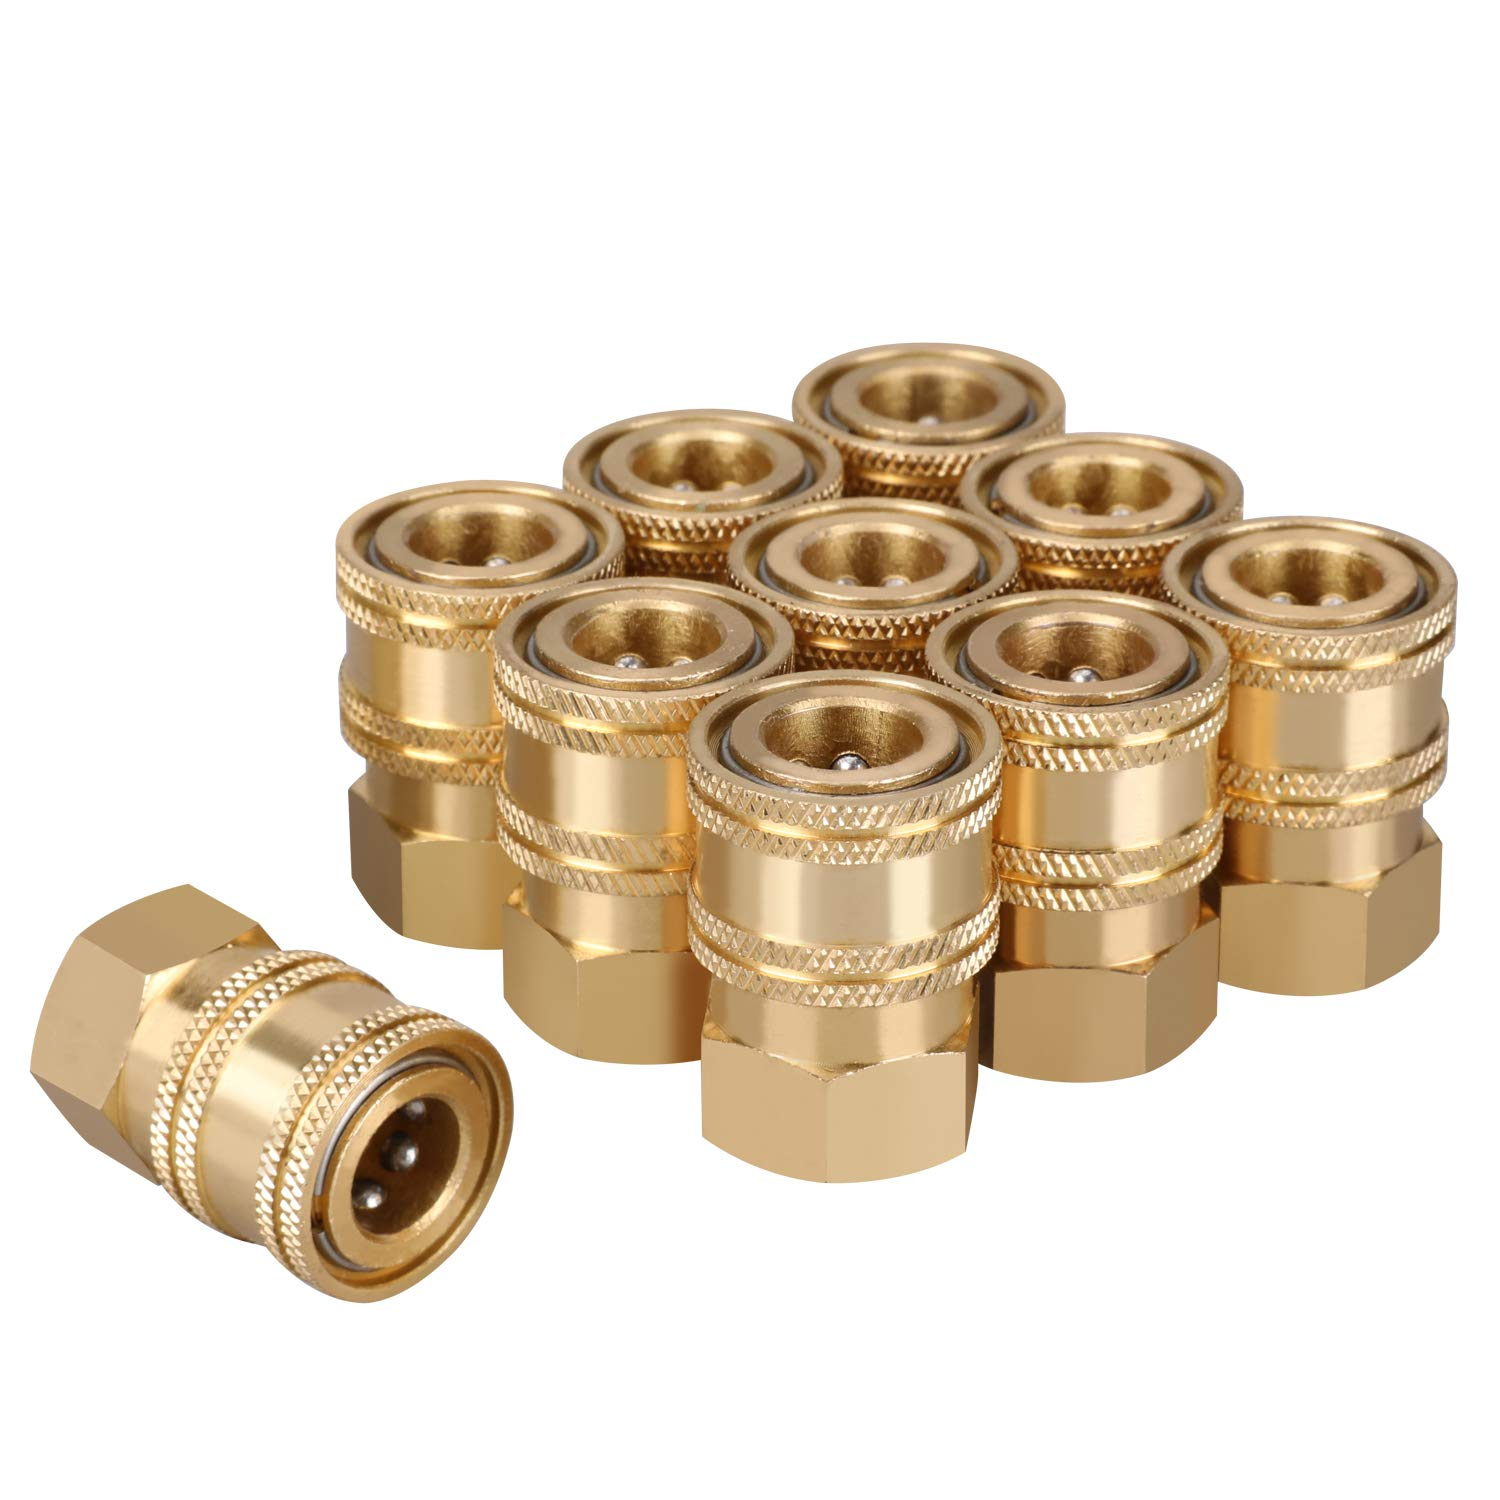 WYNNsky Pressure Washer Quick Connect Coupler, 1/4 Inch NPT Female Threads Size, Brass Material by WYNNsky